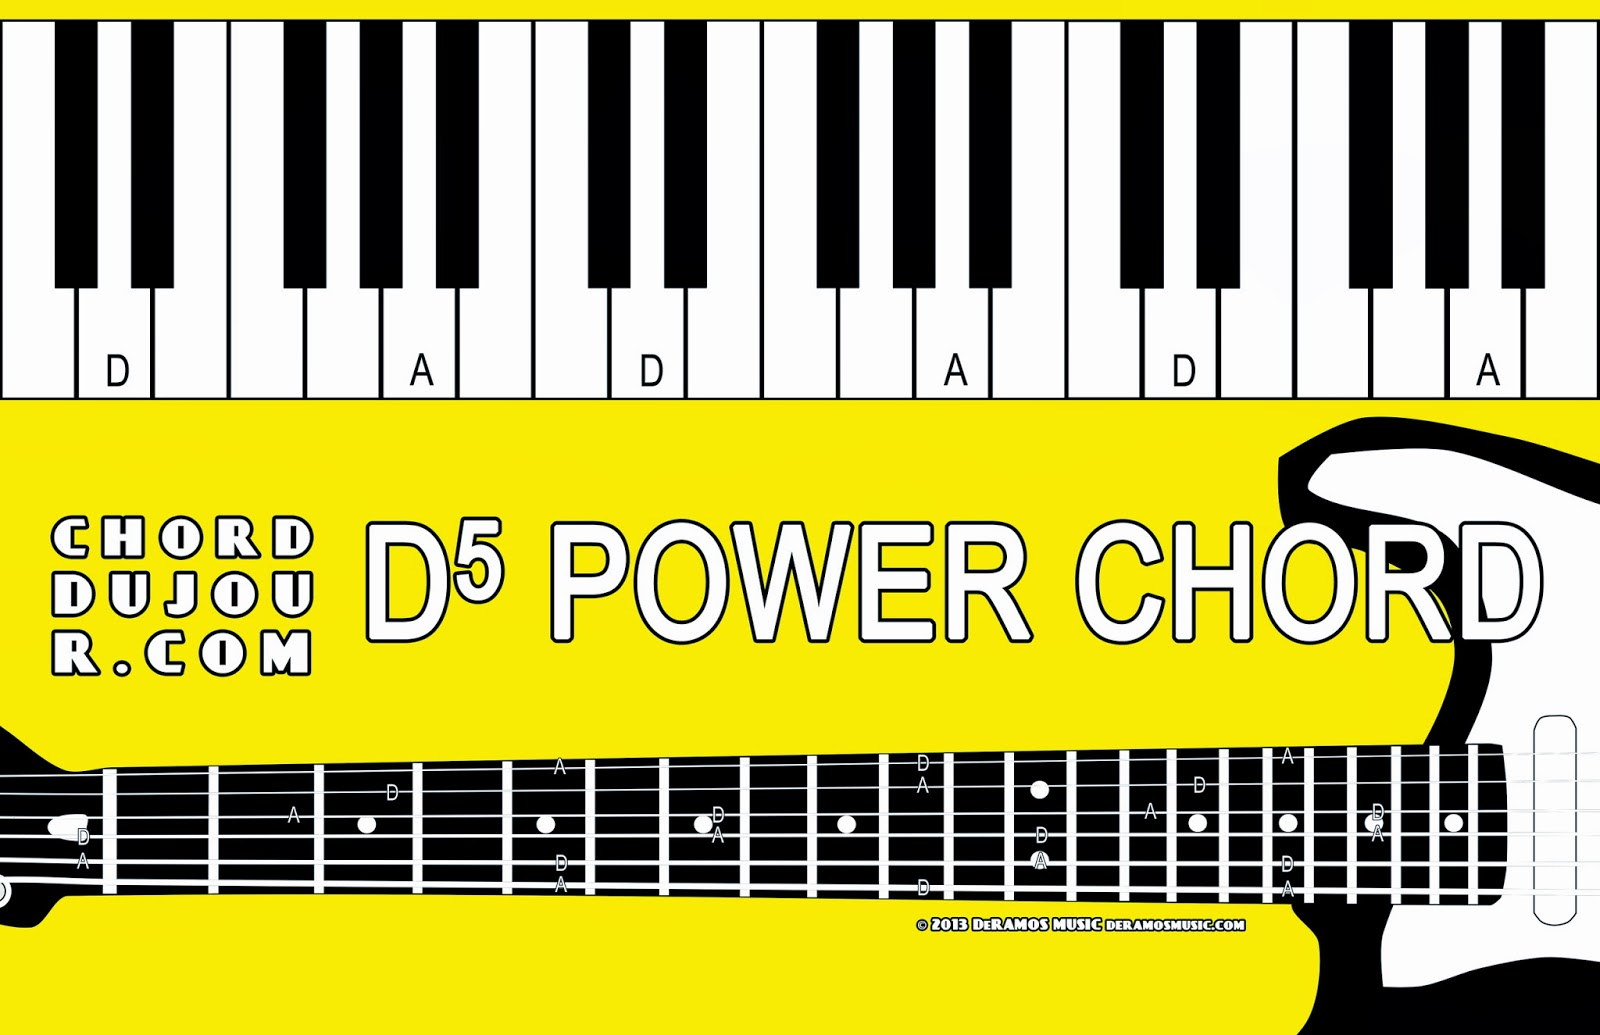 Chord Du Jour Dictionary D5 Power Chord